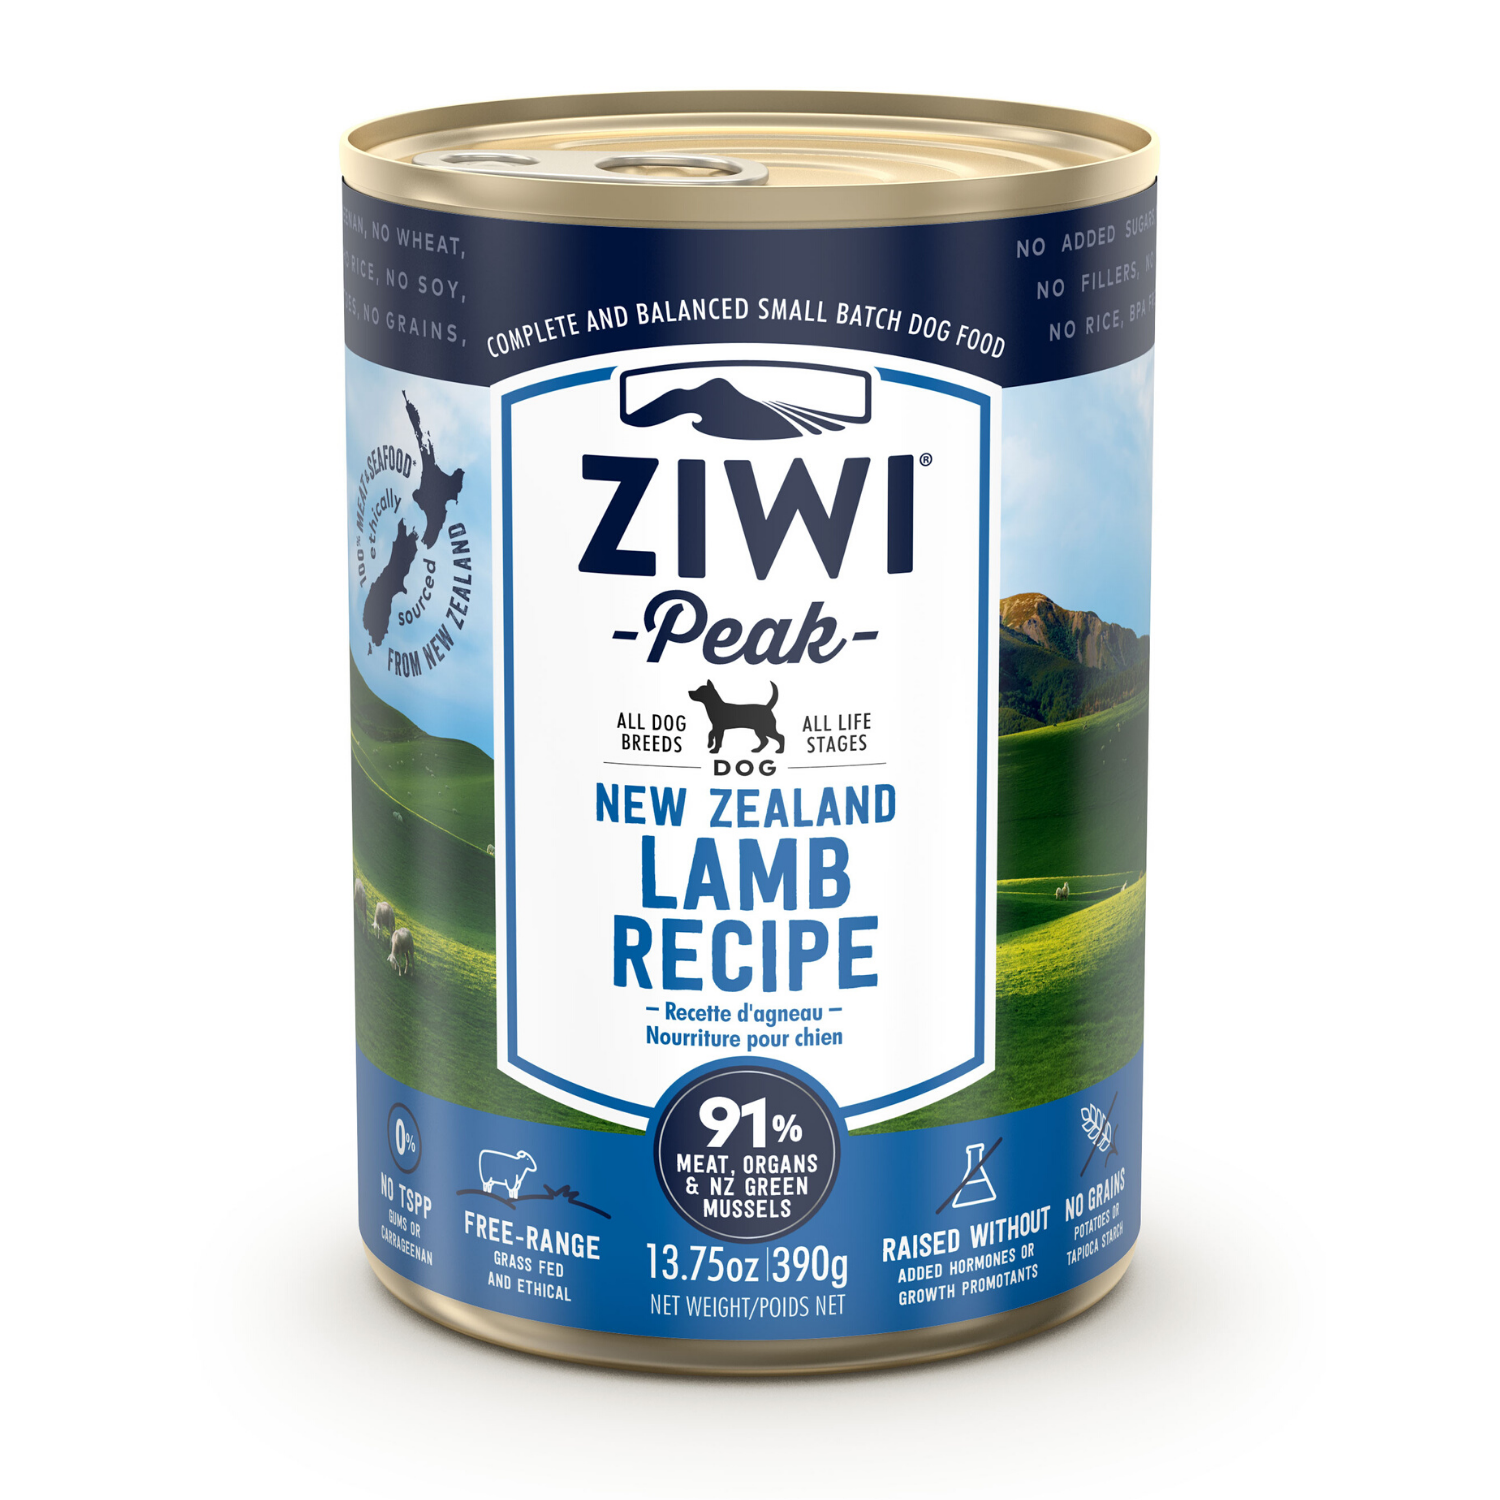 ZIWI Peak (Lamb) Canned Dog Food - 12 Cans x 390g